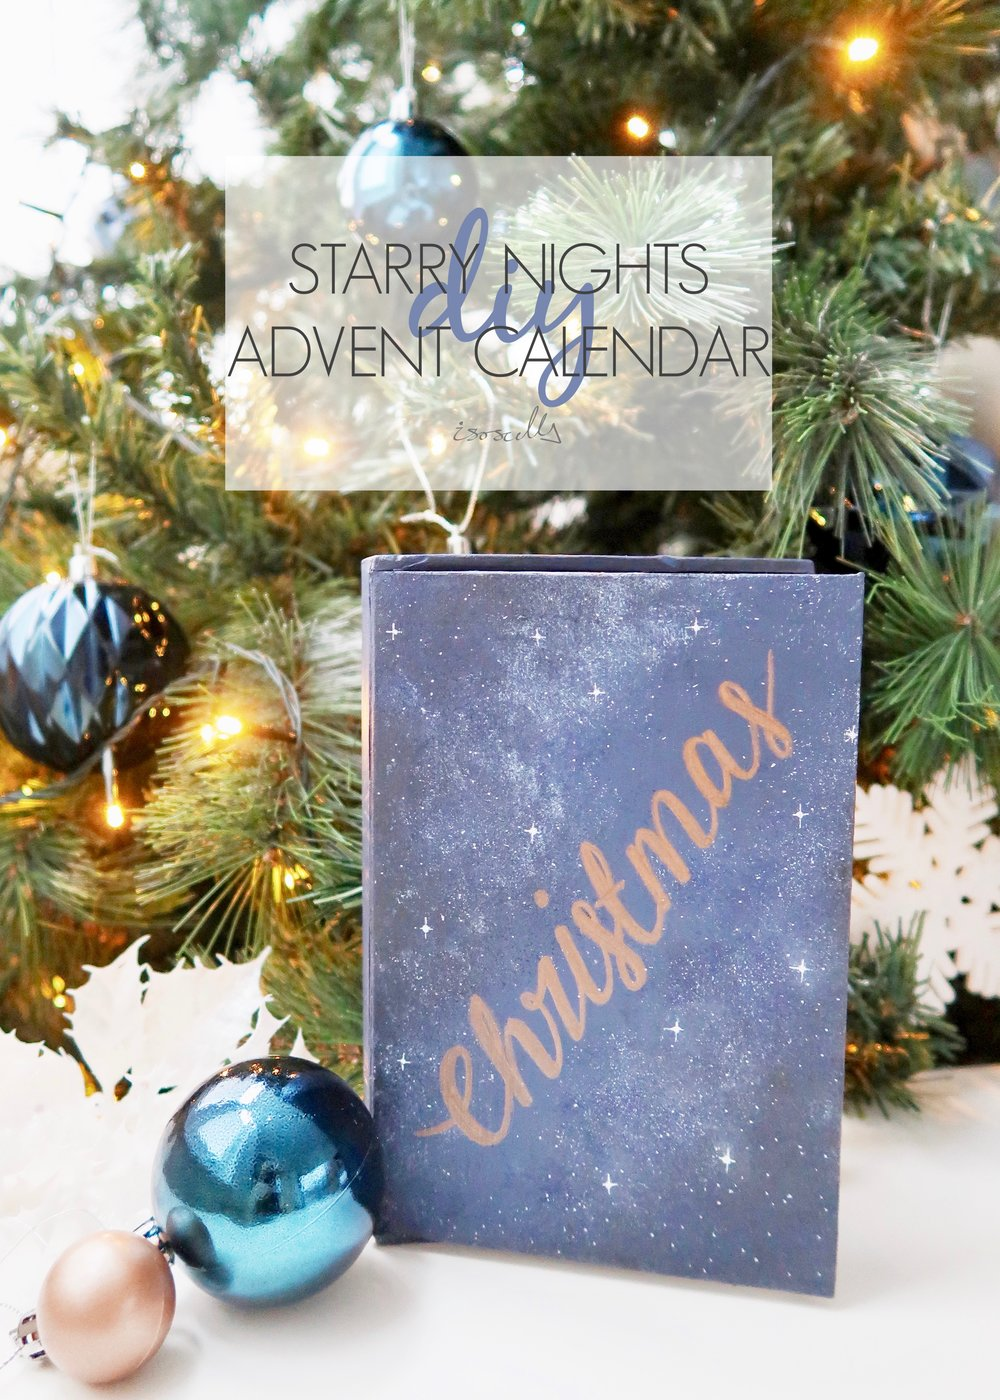 DIY Starry Night Advent Calendar by Isoscella